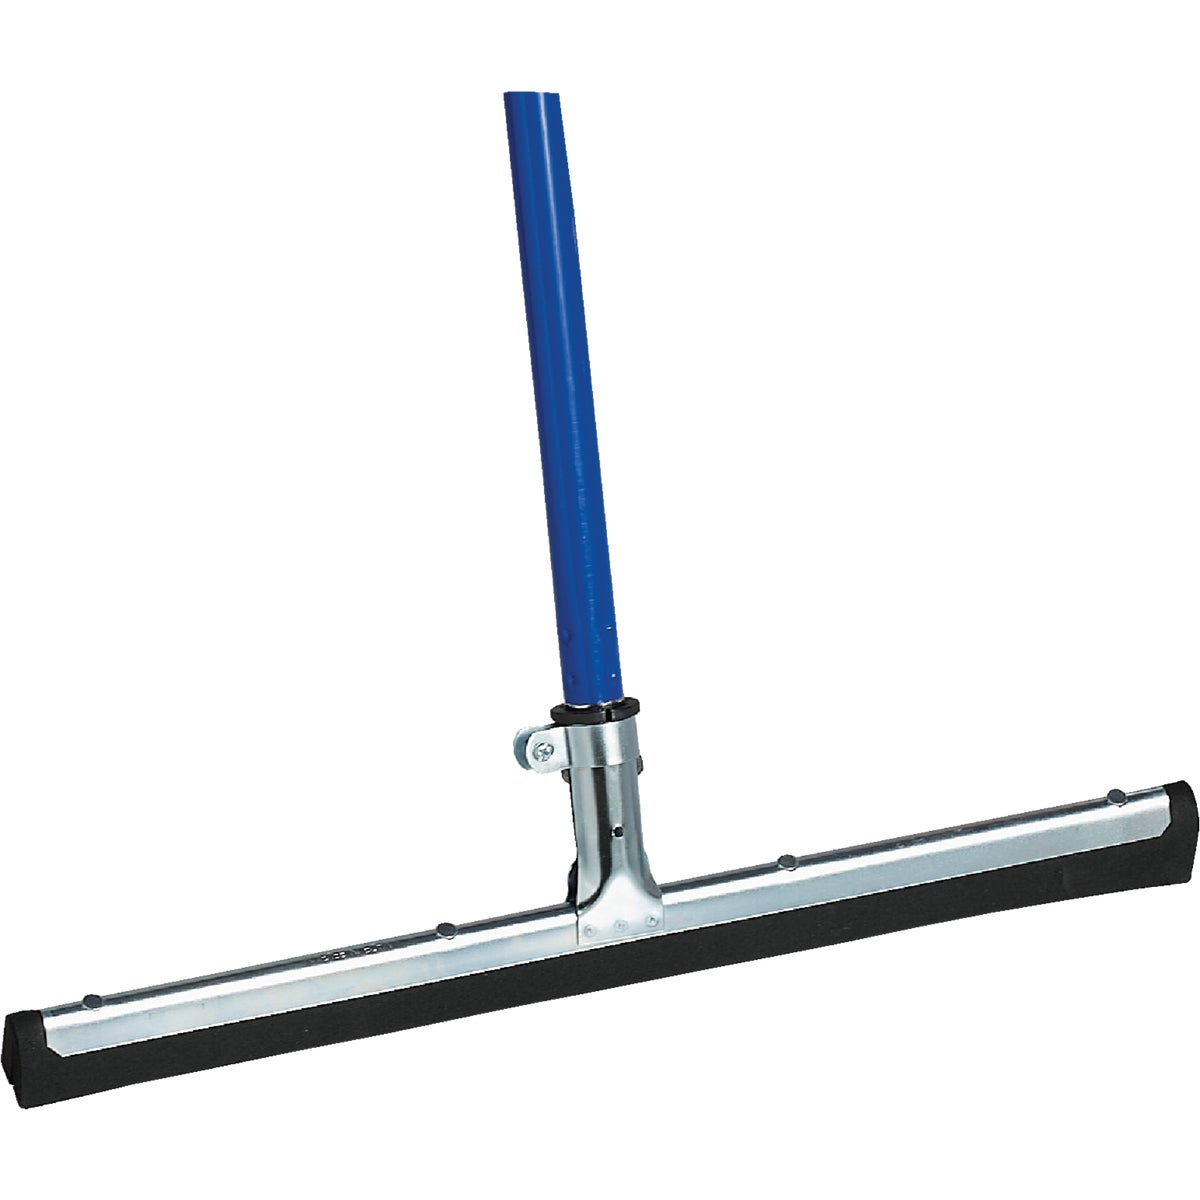 FLOOR SQUEEGEE - 61054 by Ettore Products Co